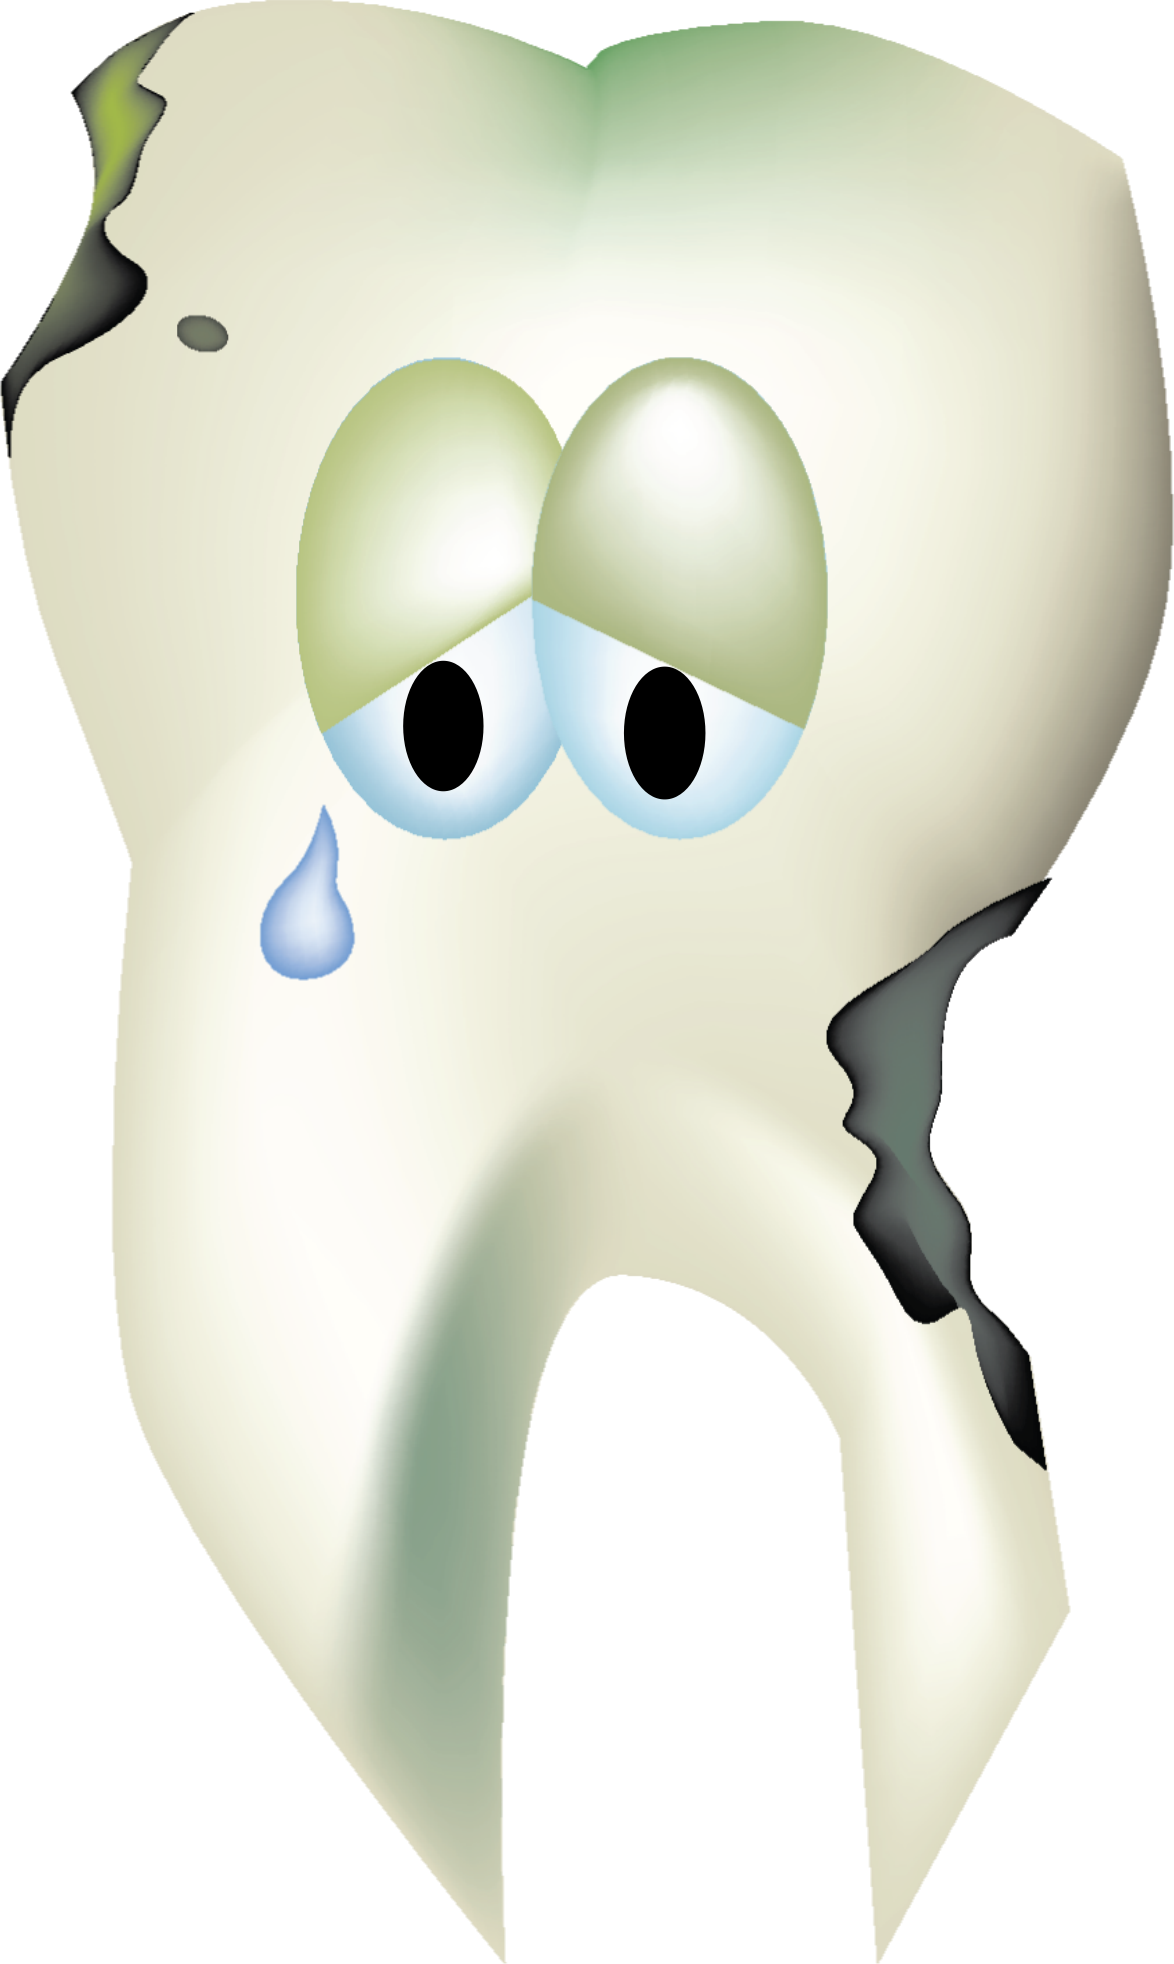 Decay decayed tooth pencil. Dentist clipart dental caries